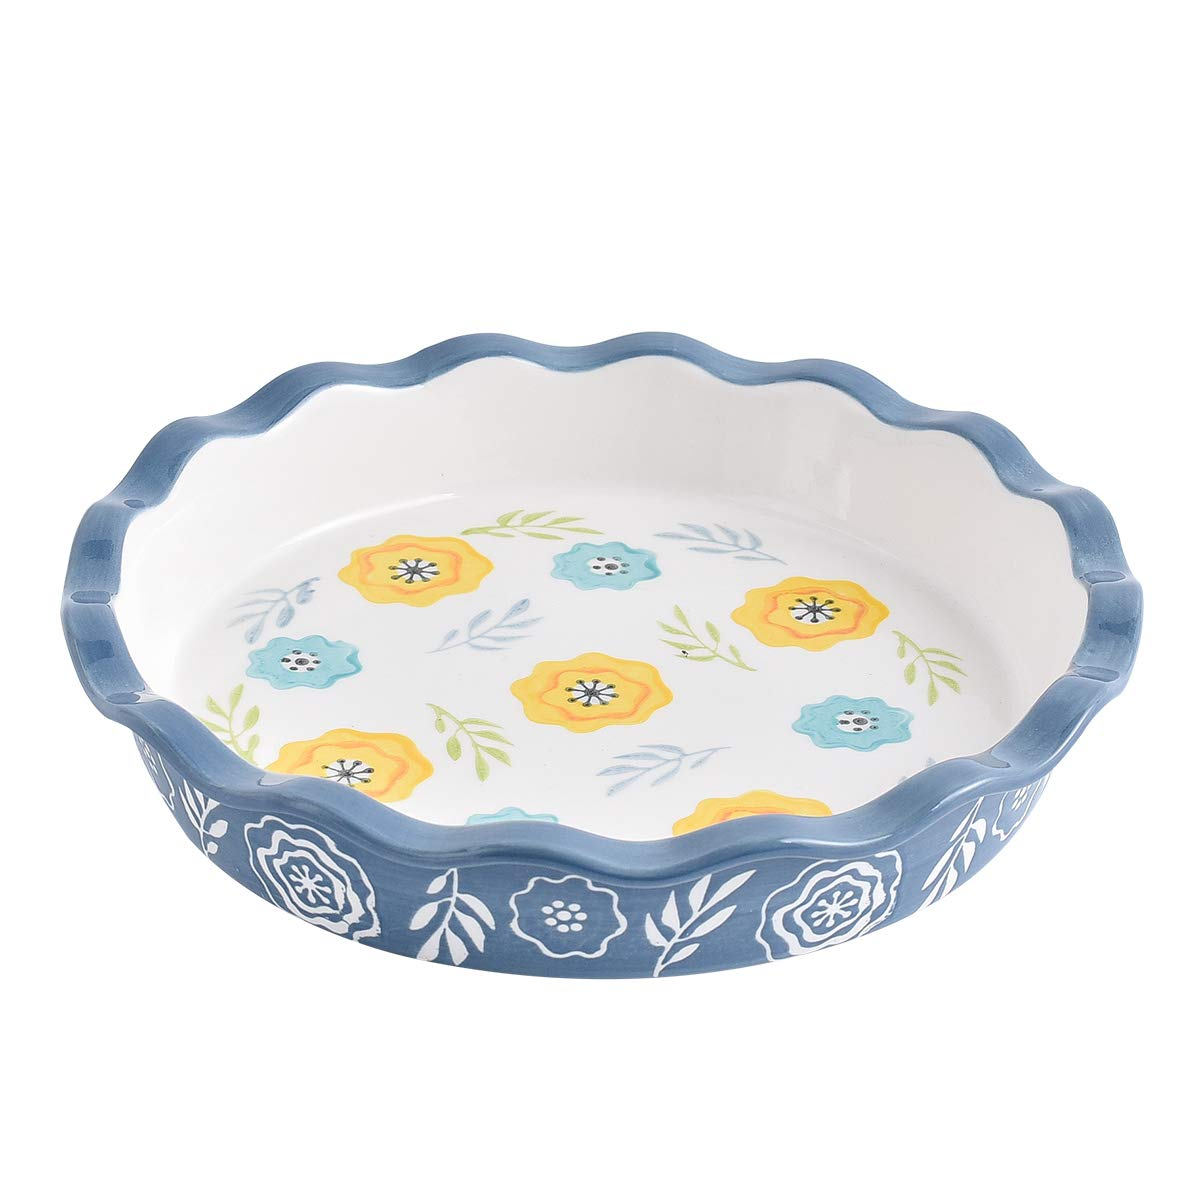 KINGSBULL HOME Pie Pan Porcelain Pie Dish Ceramic Pie Plate 10.5-Inch Teal Non-Stick Safe for Microwaves, Dishwasher, Ovens, Navy blue by KINGSBULL HOME